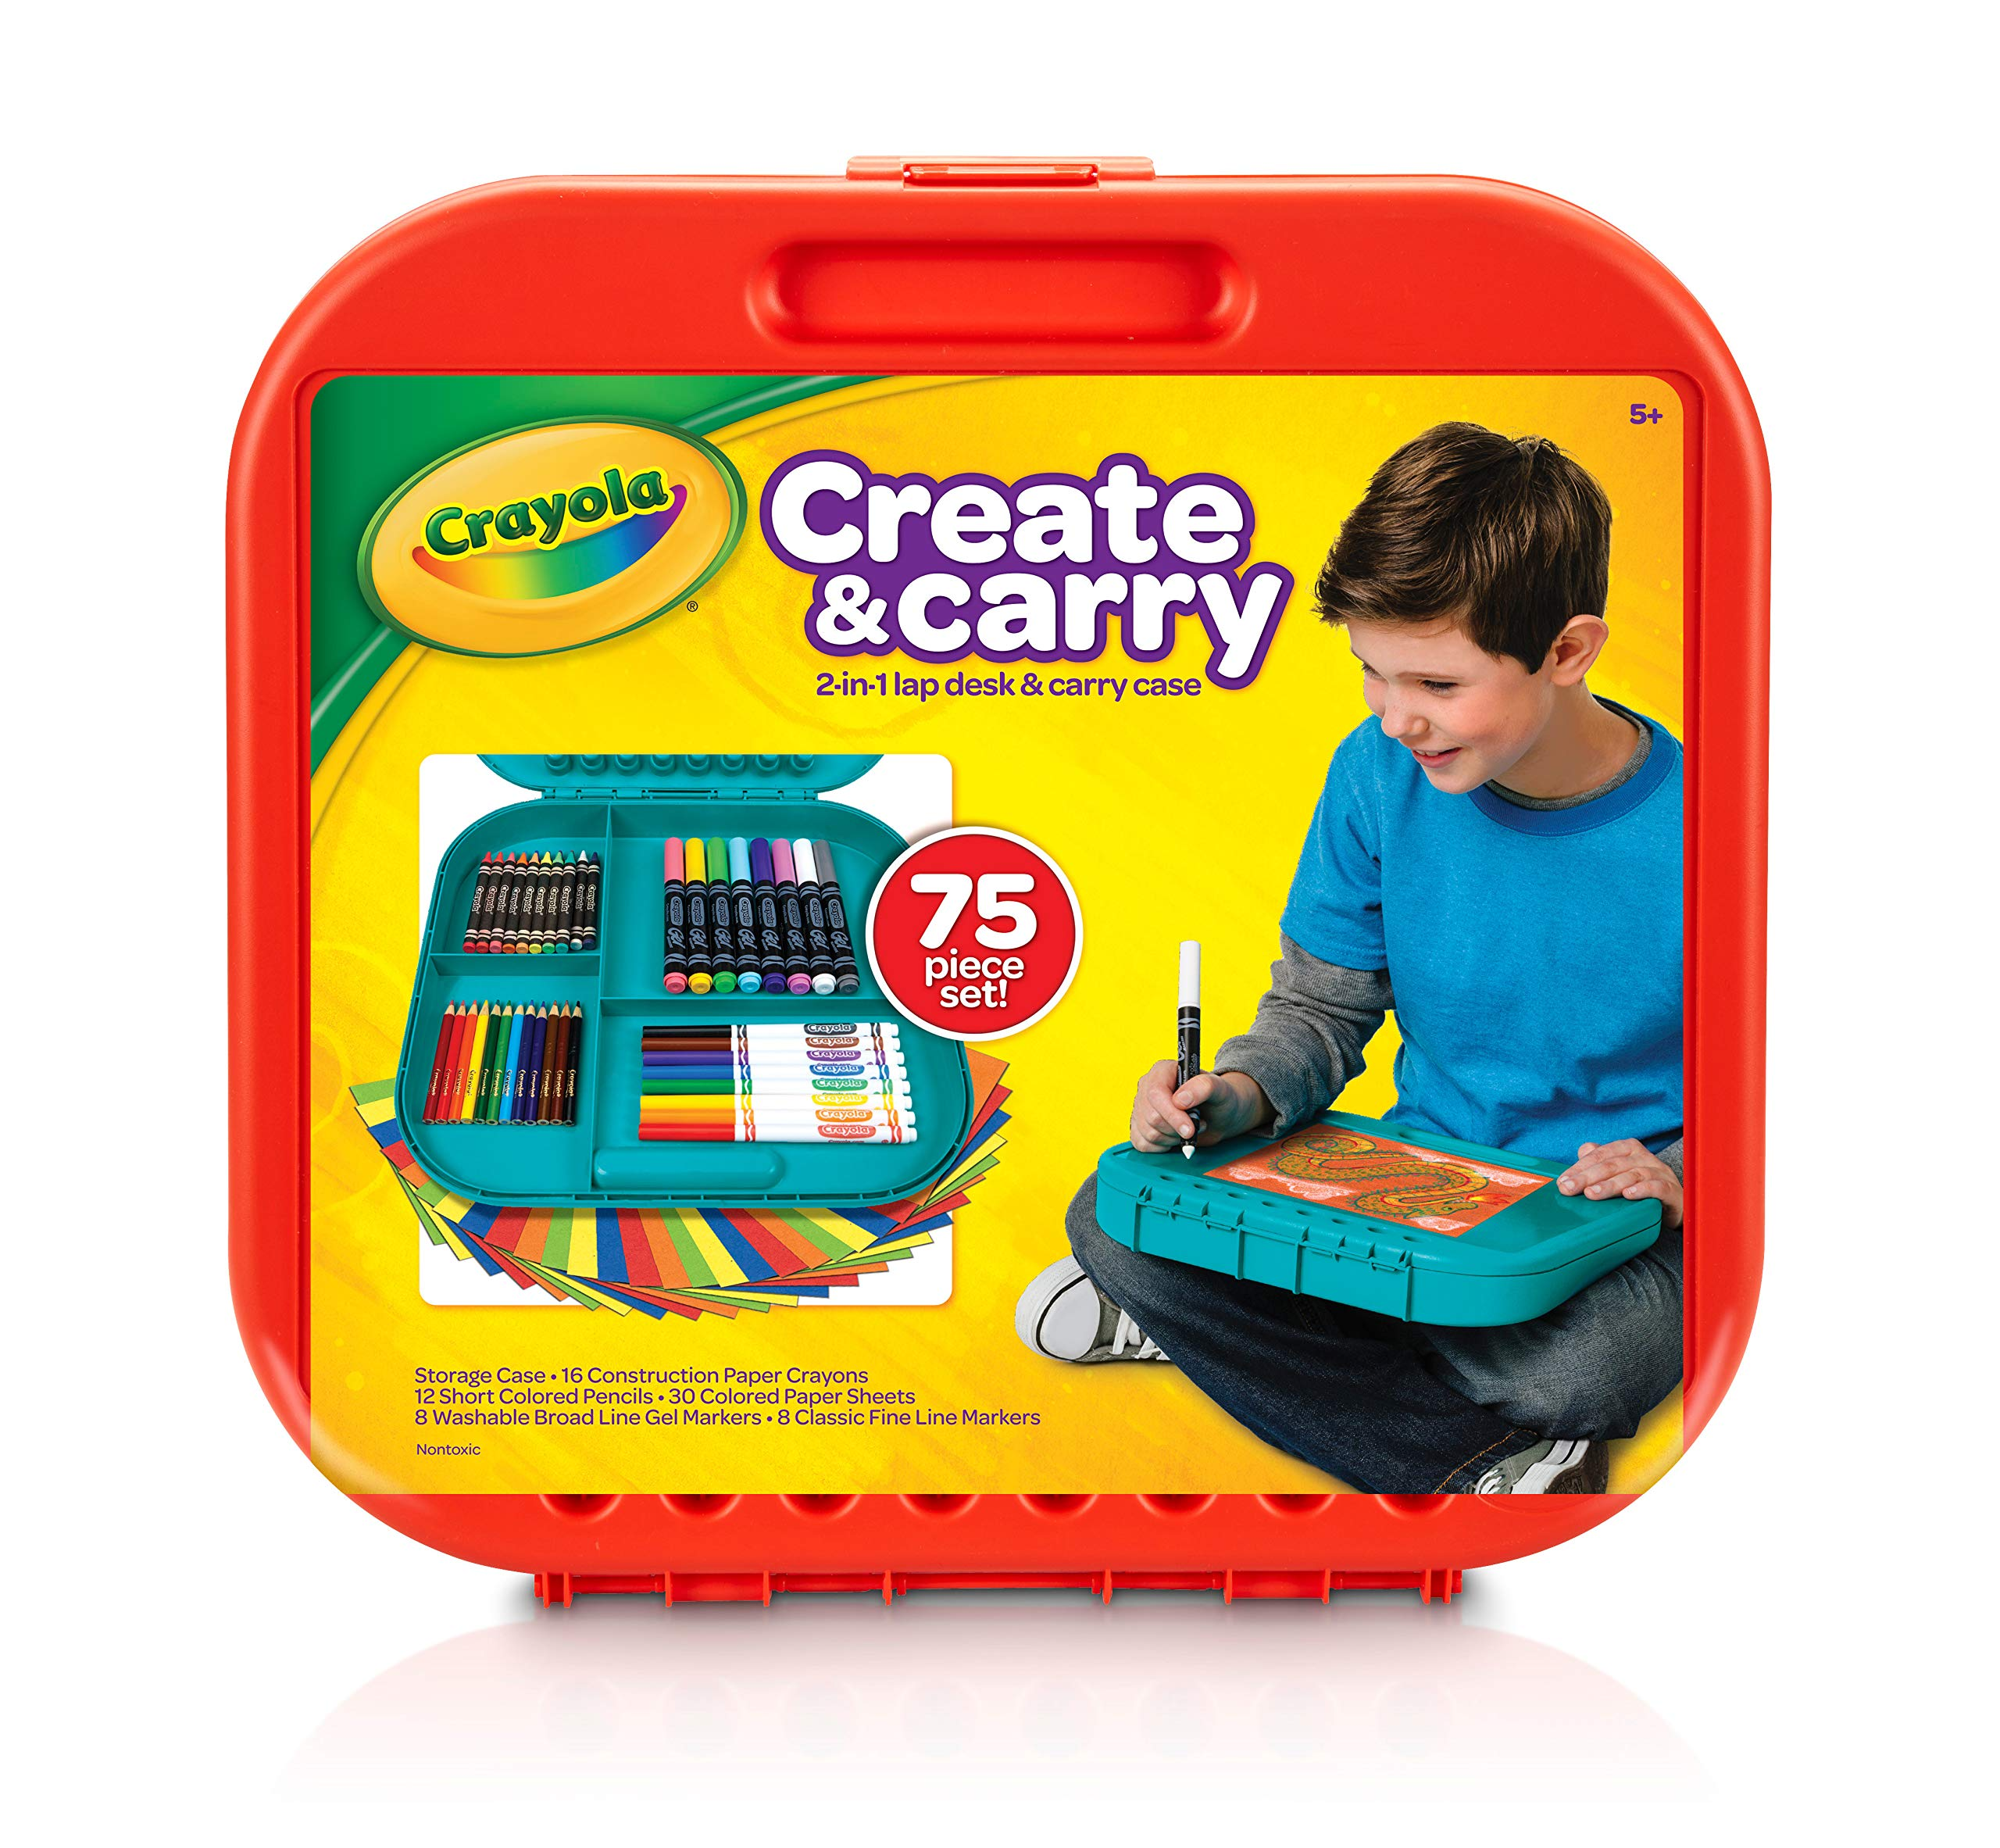 Crayola Create 'N Carry 75Piece Art Kit Art Gift for Kids 5 & Up, 2-in-1 Portable Lap Desk & Carry-Case for Child Artists On-The-Go, Includes Markers, Crayons, Colored Pencils & Paper, Styles May Vary by Crayola